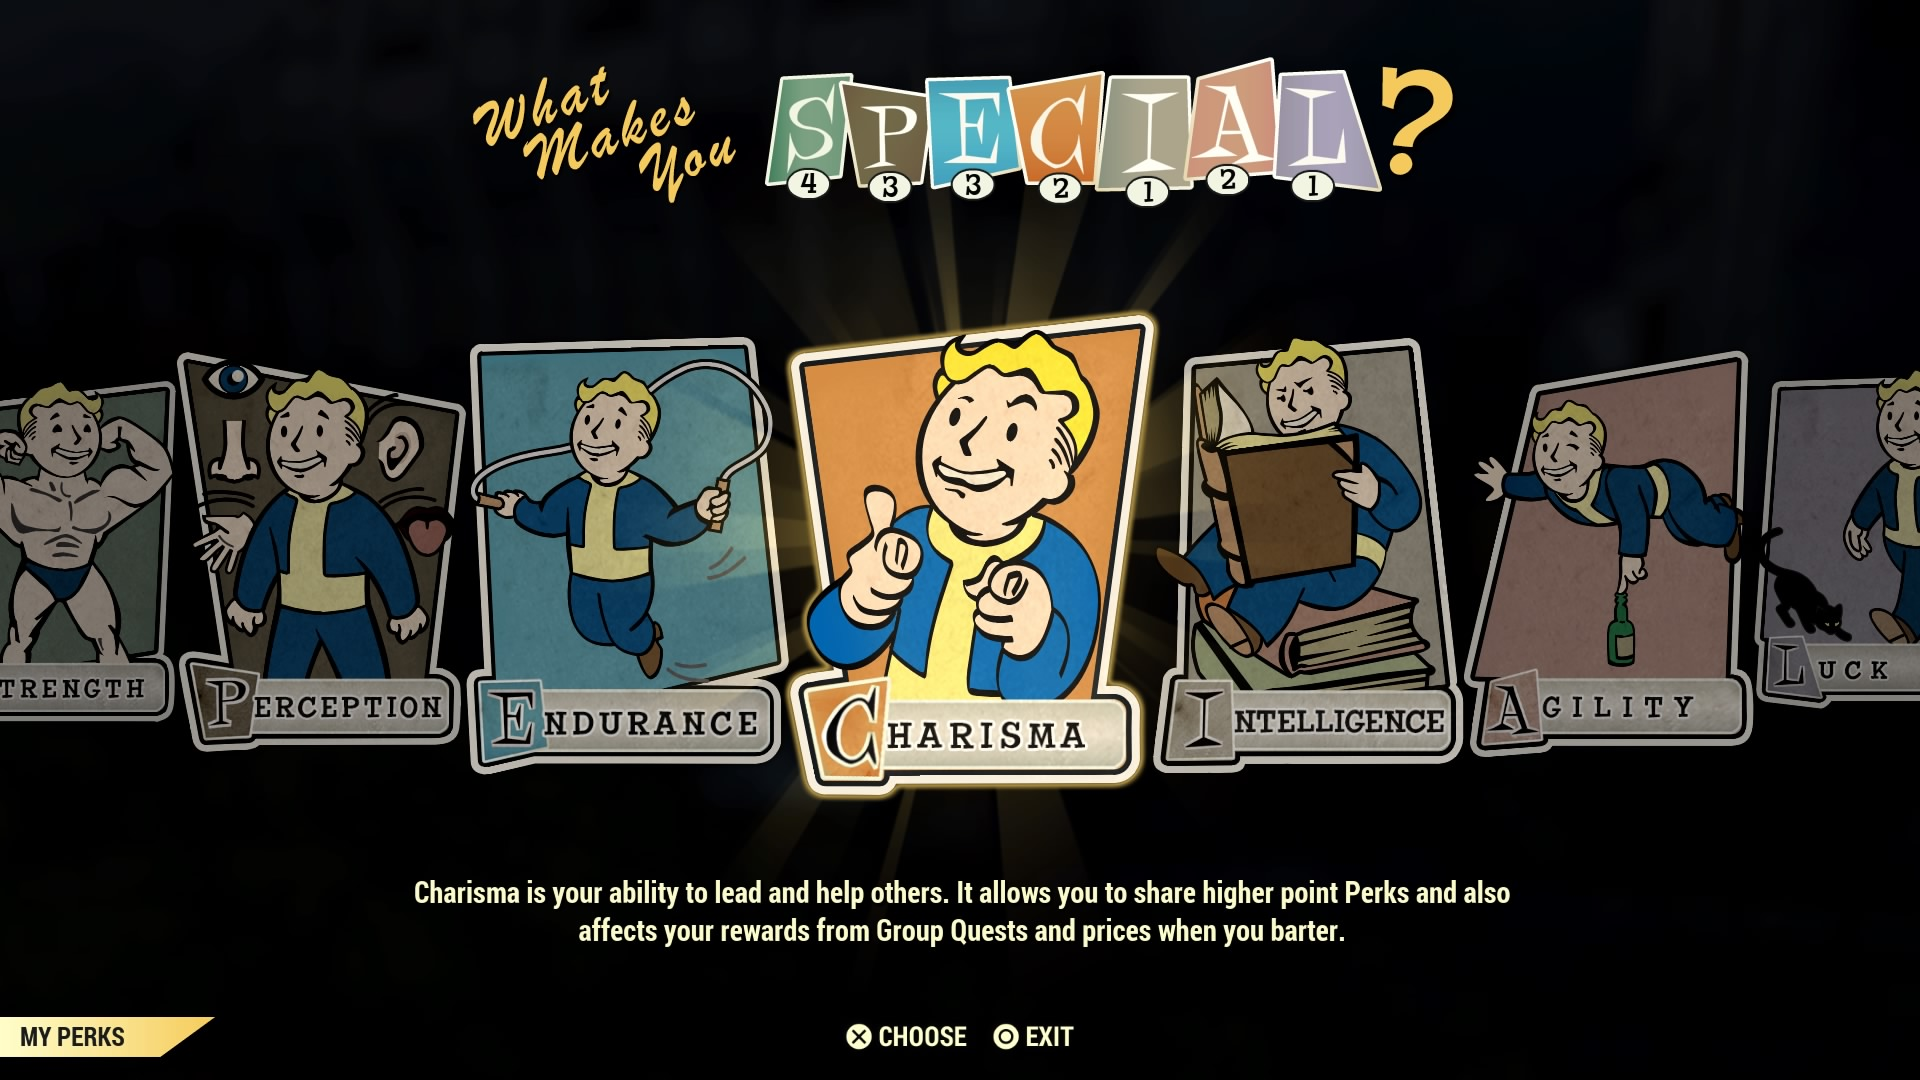 Fallout 76 perks: Mysterious Stranger, Bear Arms, Green Thumb - all